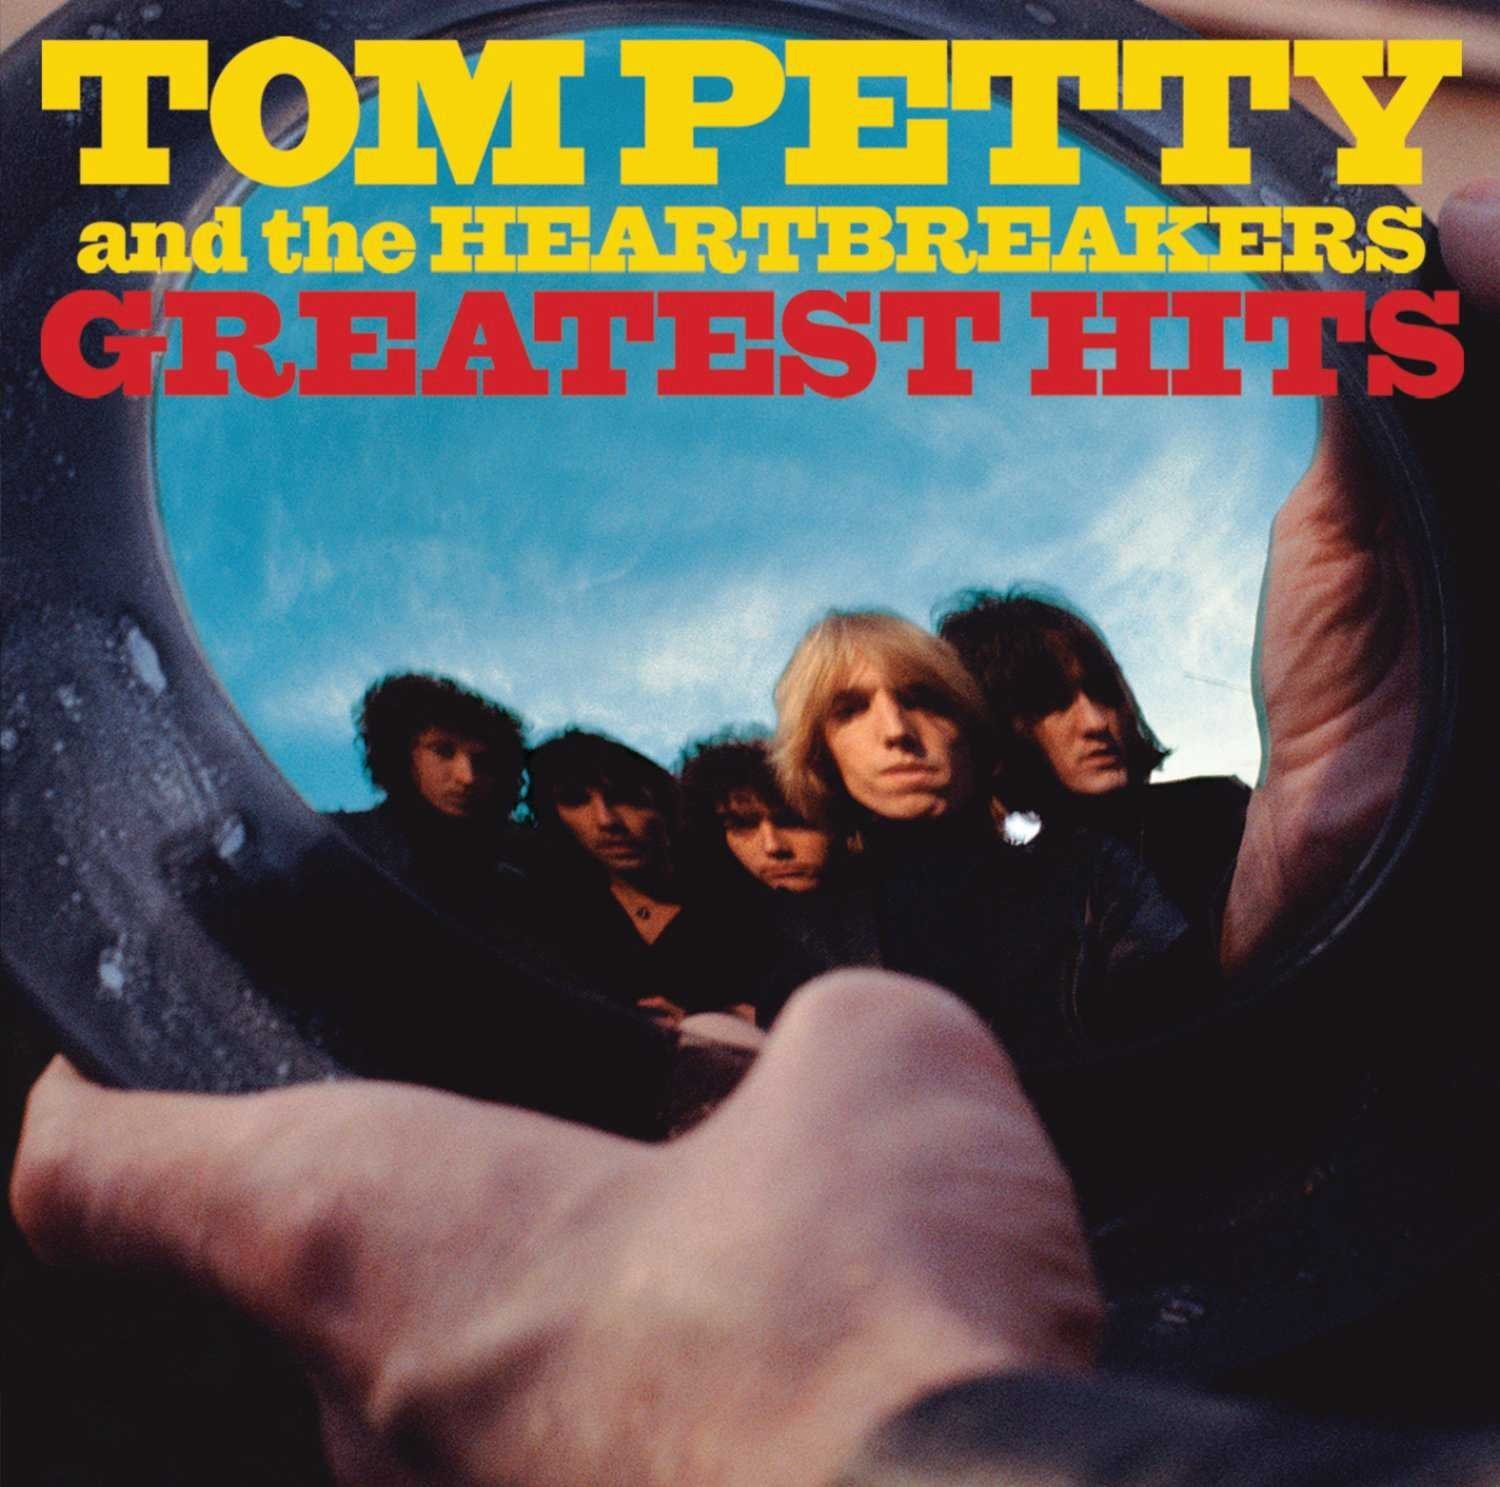 Greatest Hits by Tom Petty And The Heartbreakers image